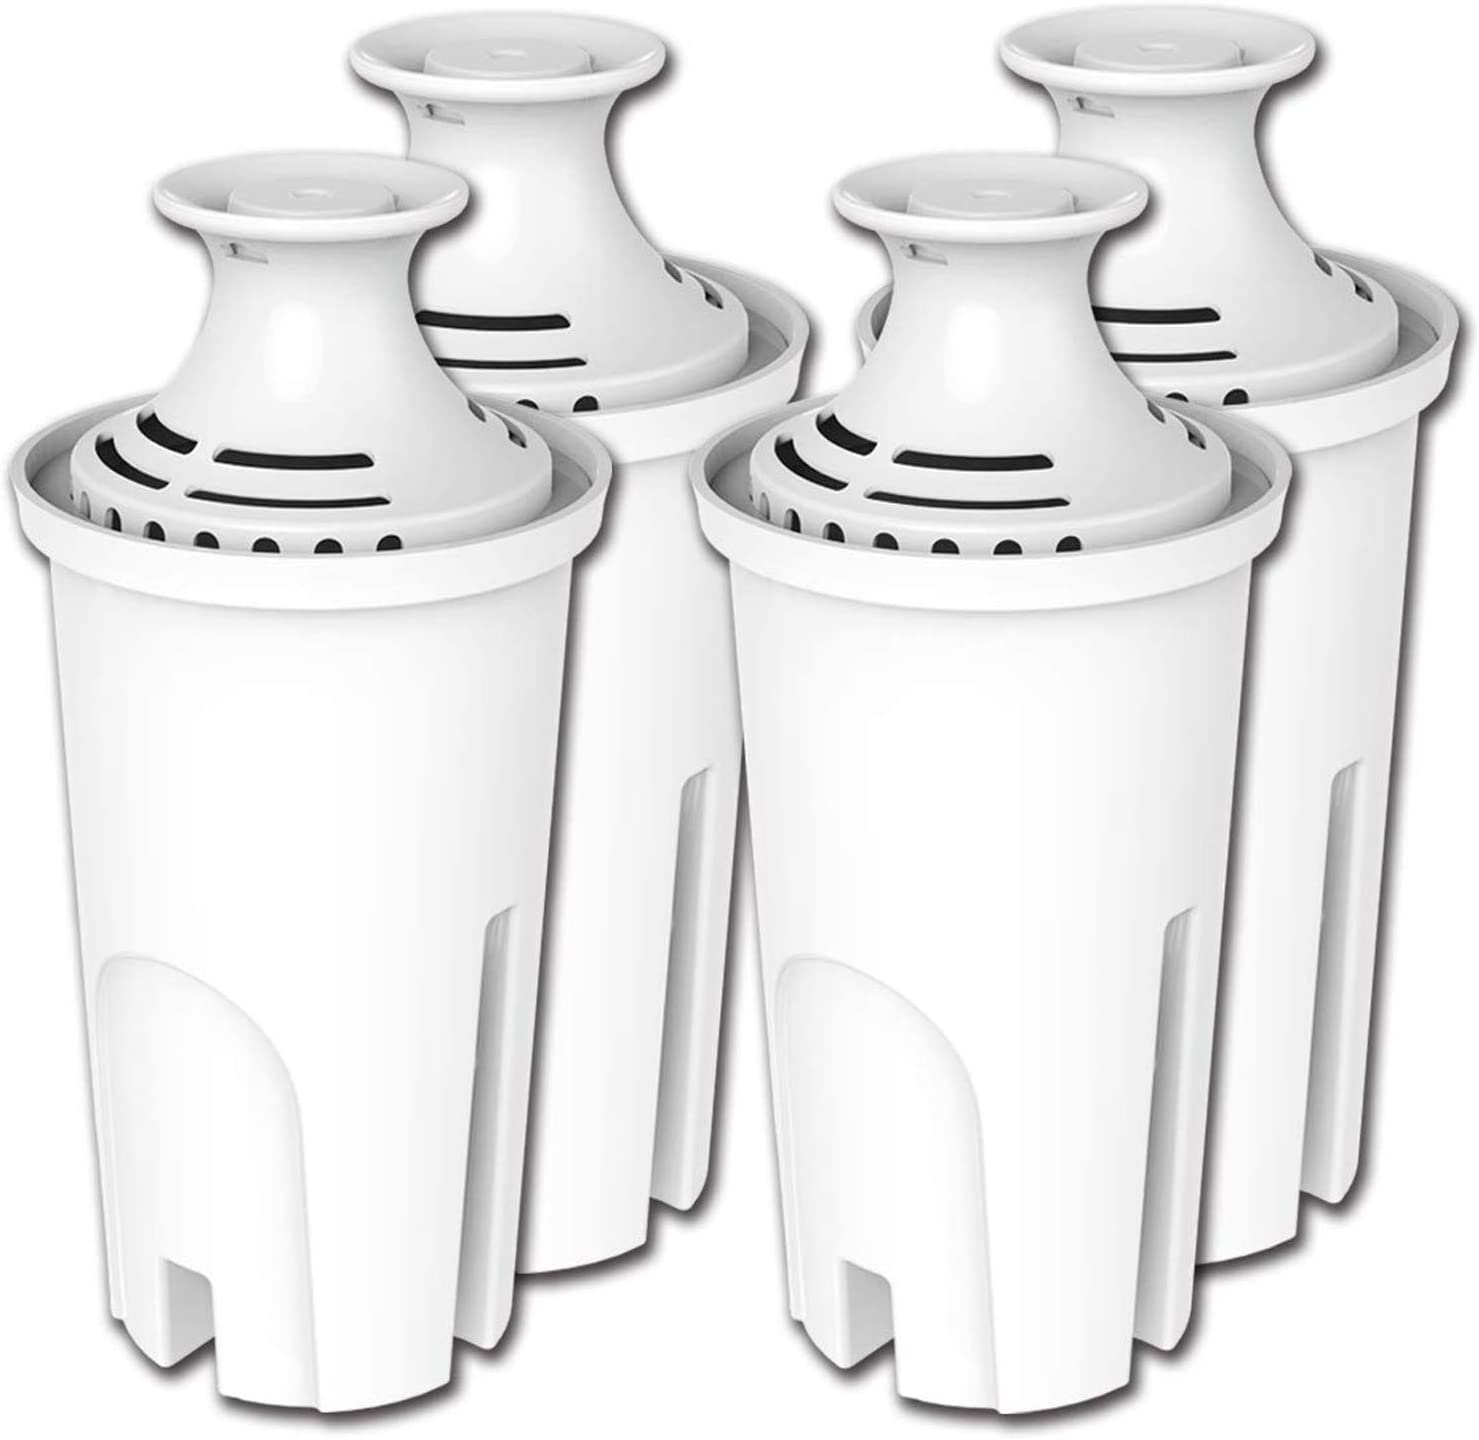 PUREUP 4 Pack Standard Water Brita Filter Compatible Cheap mail order specialty store Pitche with Inexpensive